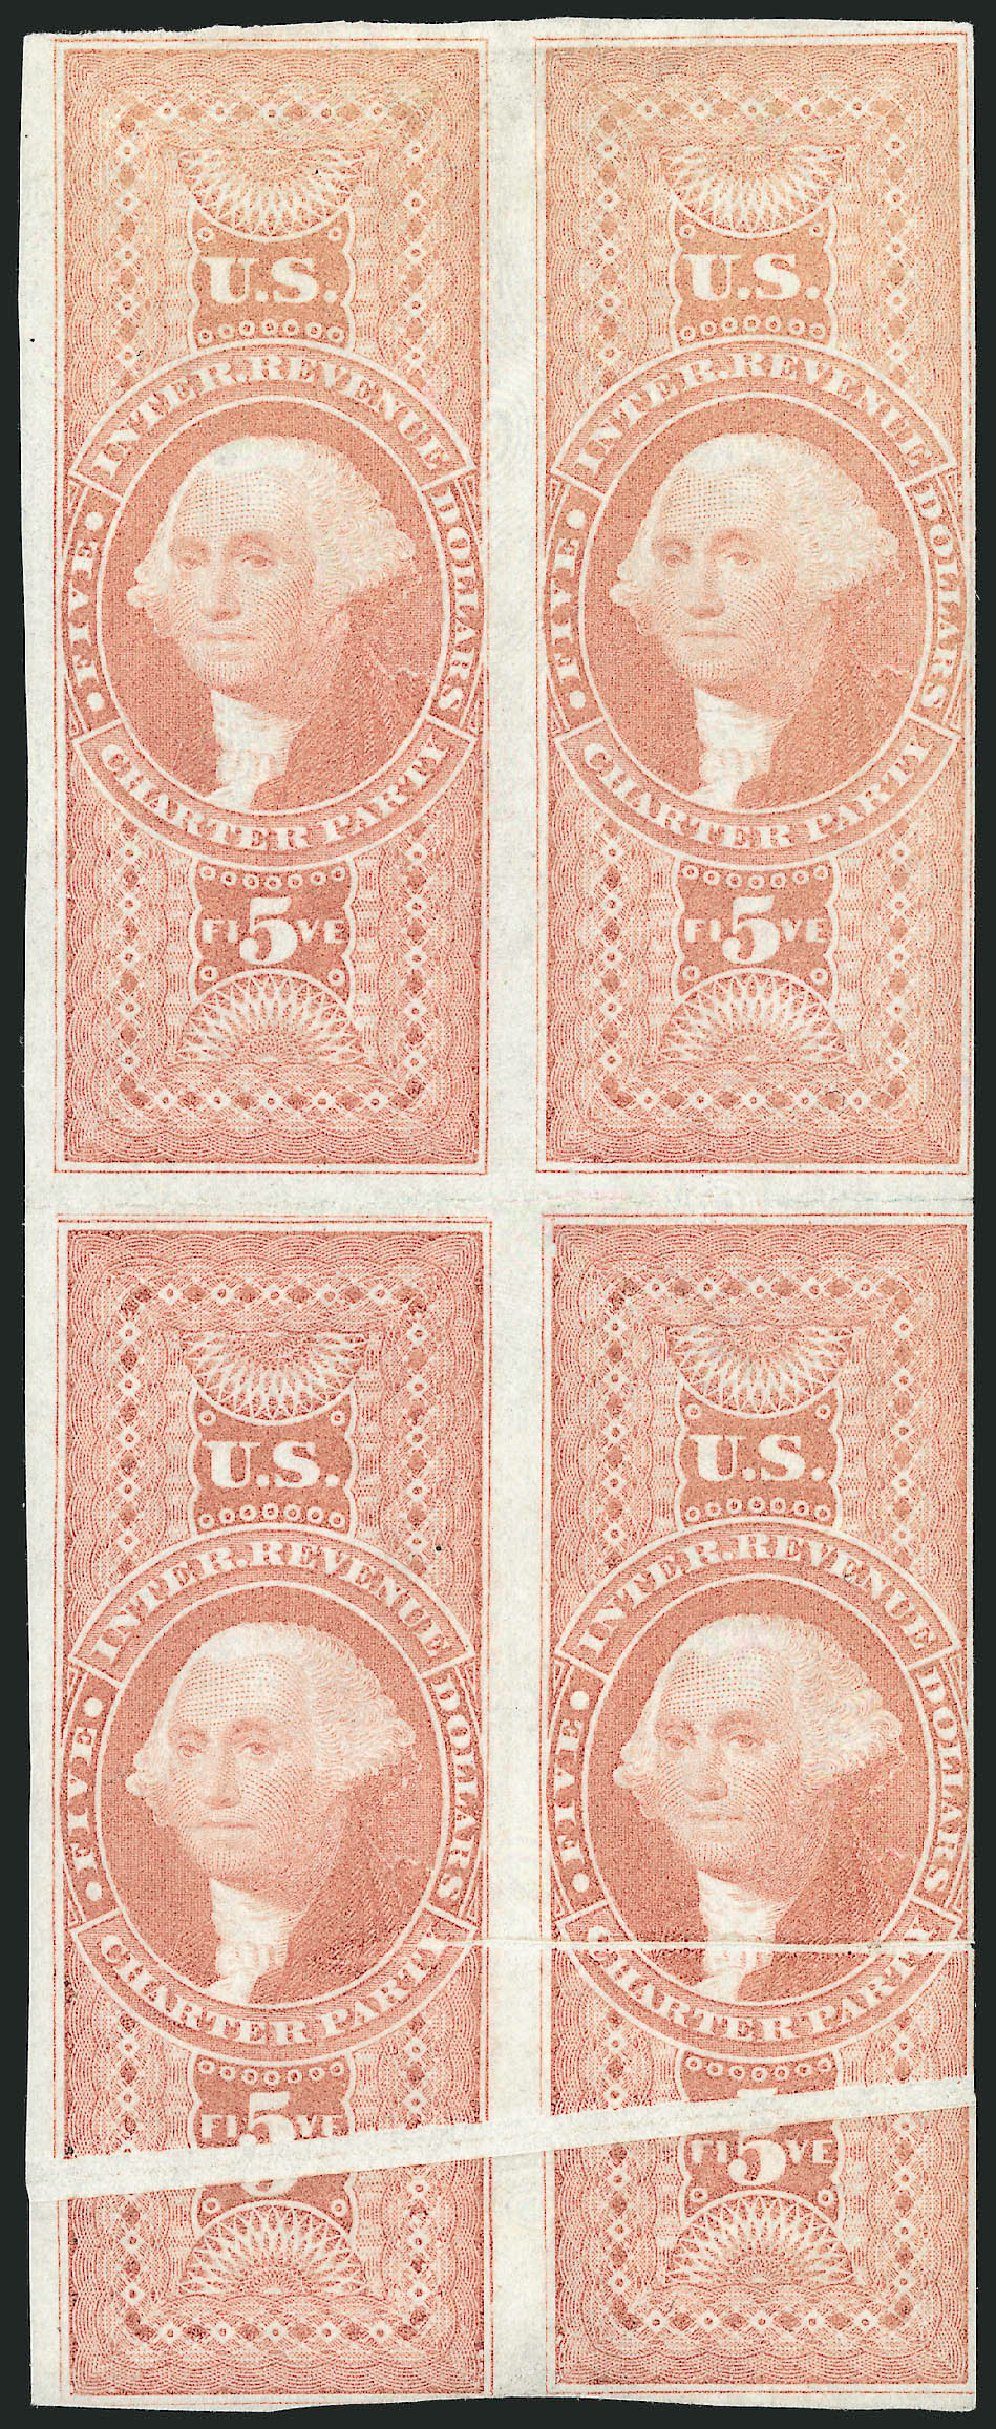 US Stamps Price Scott Cat. R88 - 1862 US$5.00 Revenue Charter Party. Robert Siegel Auction Galleries, Dec 2014, Sale 1089, Lot 368